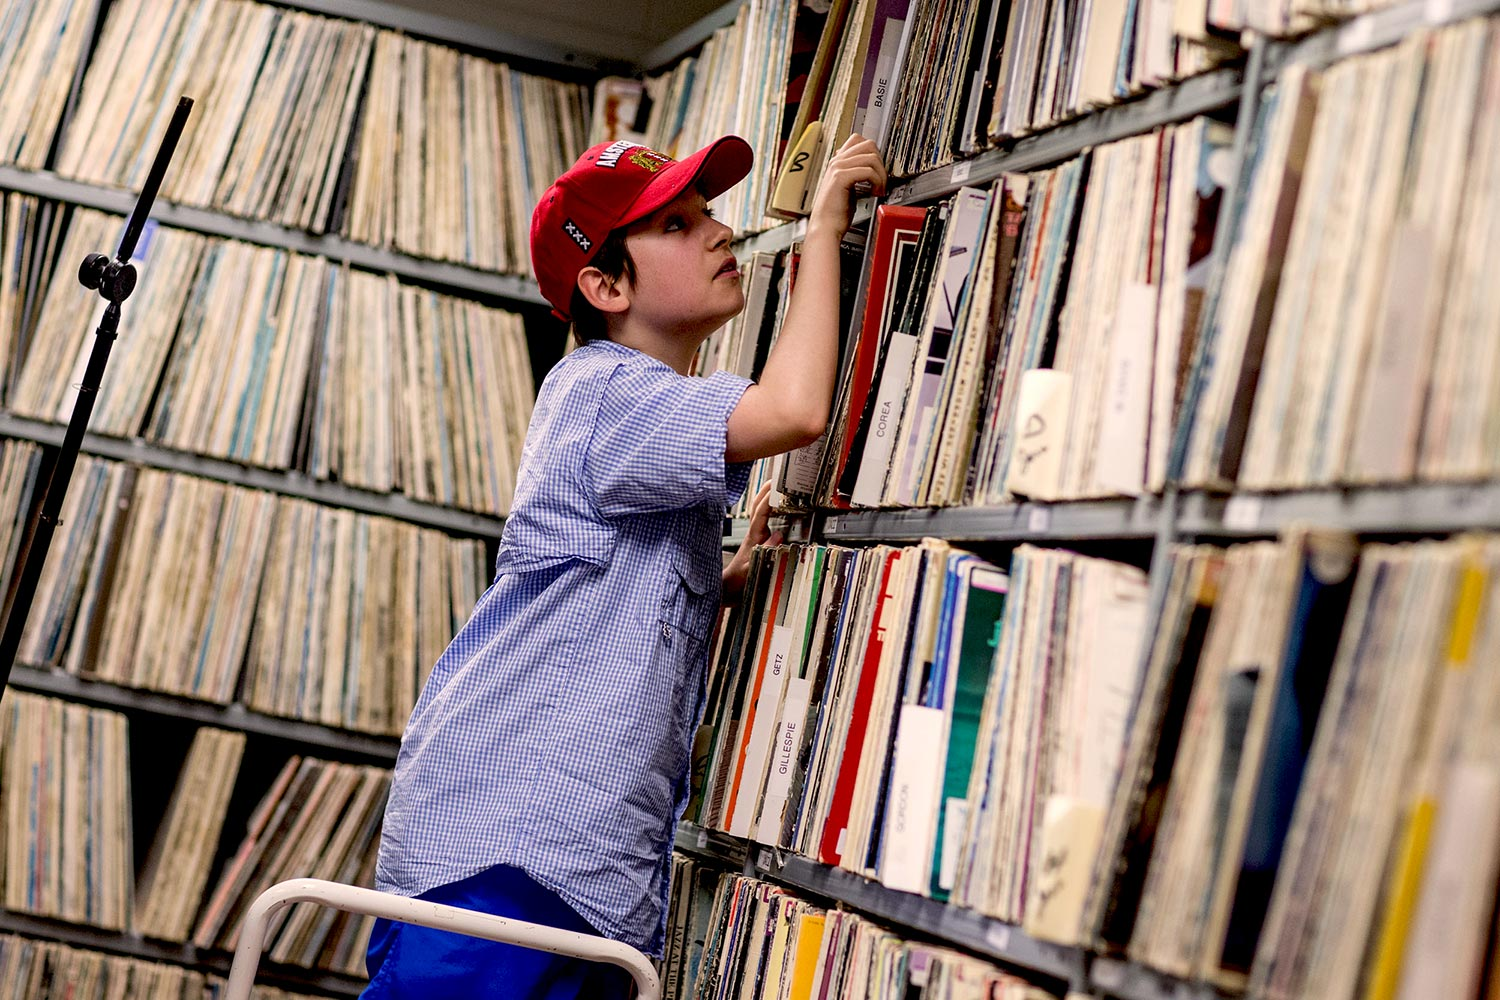 Camper Kieran Garrod searches for a record in WTJU's extensive library of vinyl records.